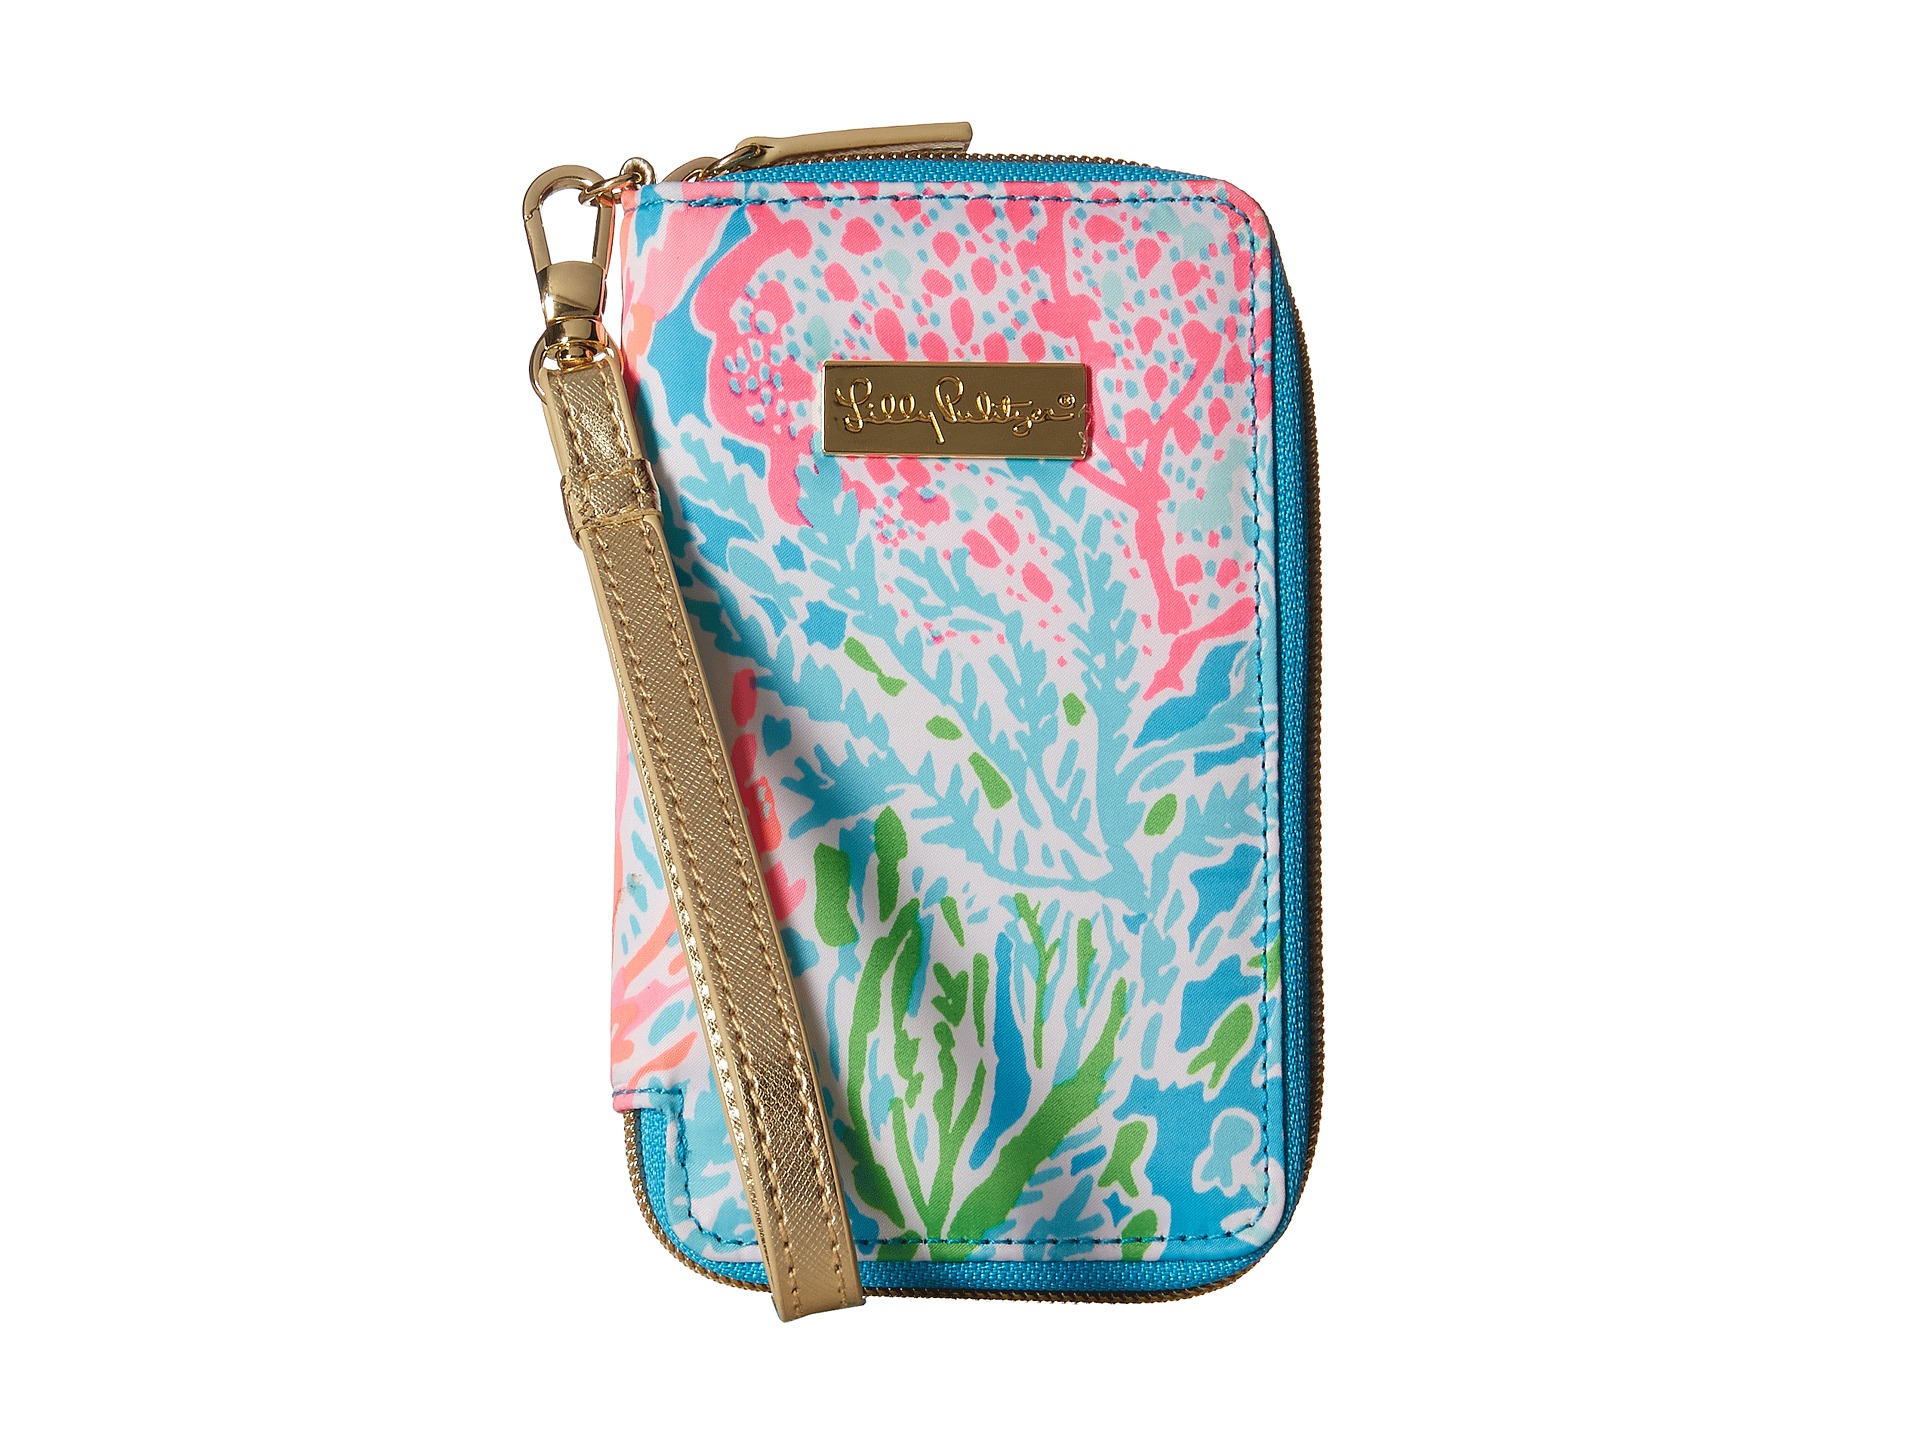 Charmant Lilly Pulitzer Wallet Phone Case Best Photo Justiceforkenny